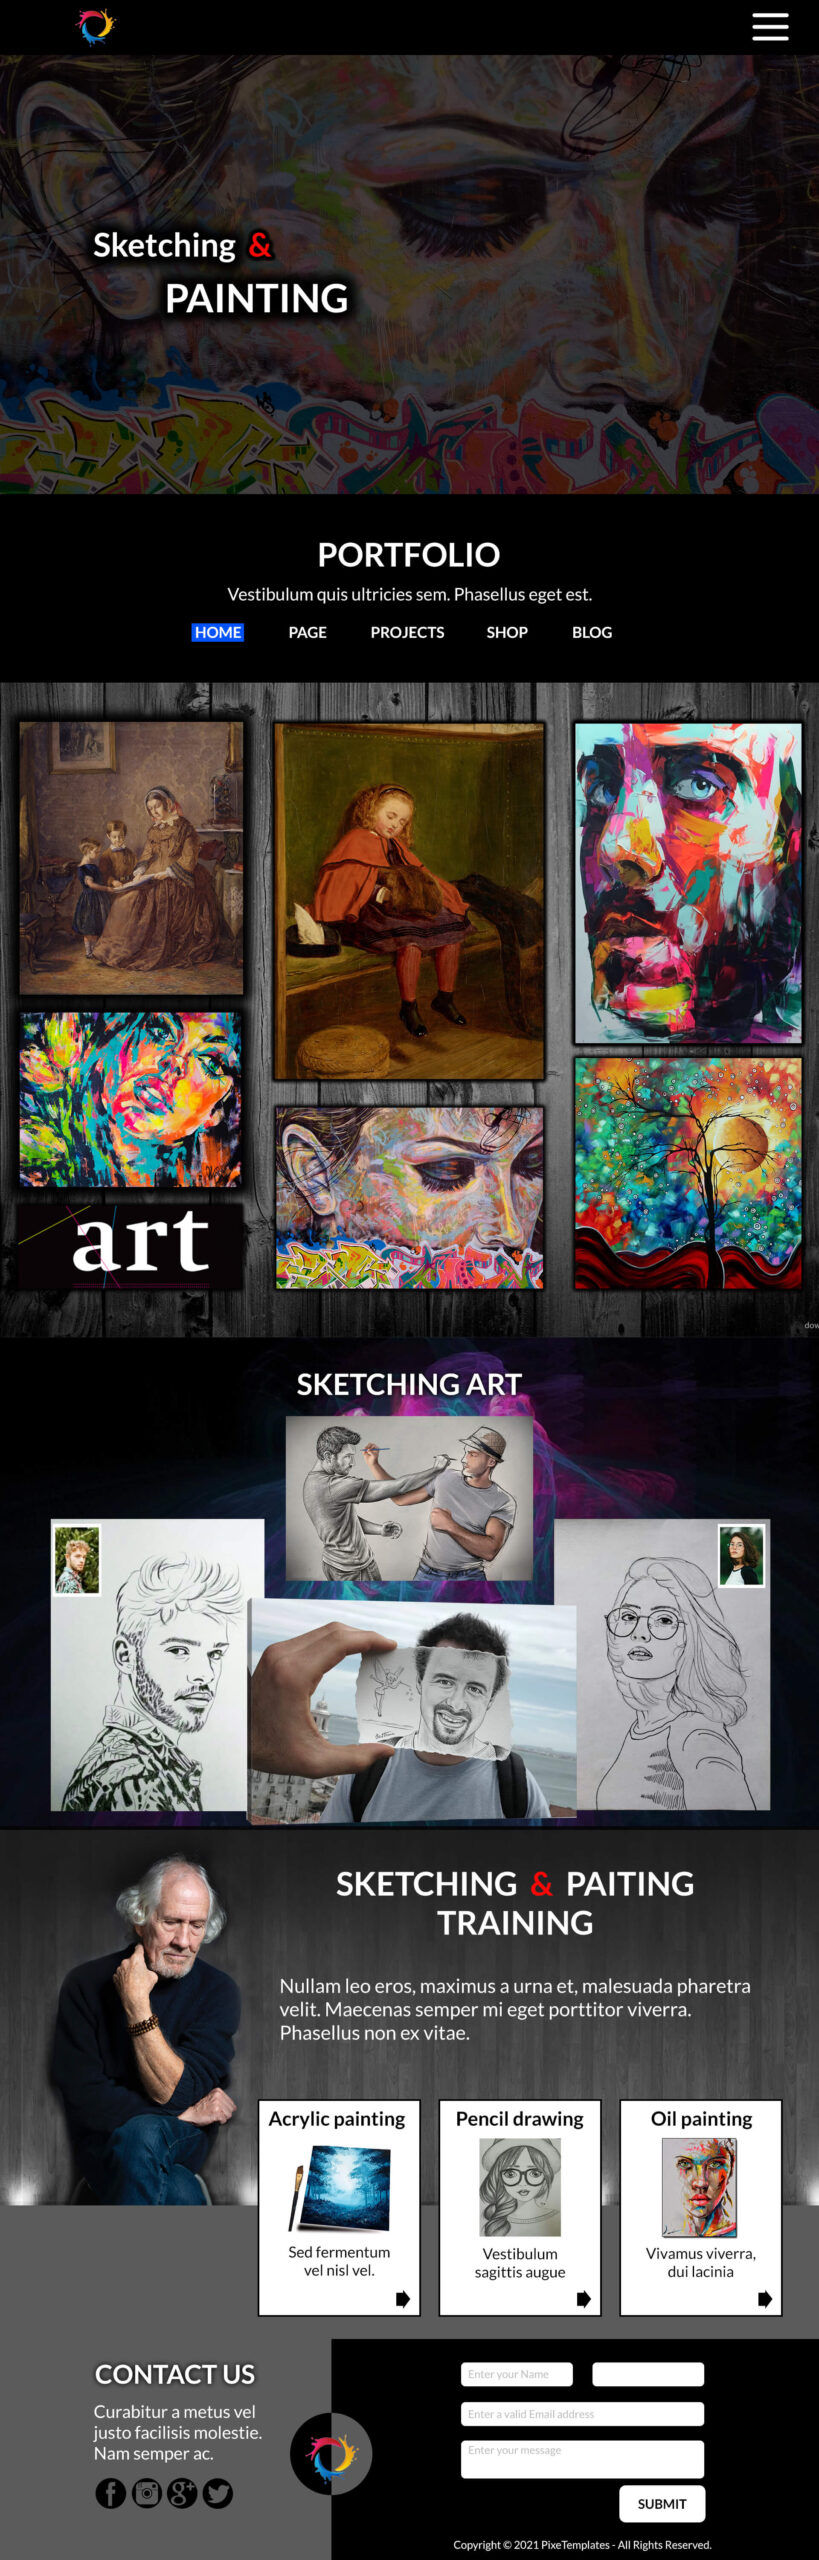 Sketching & Painting Website Template for Free